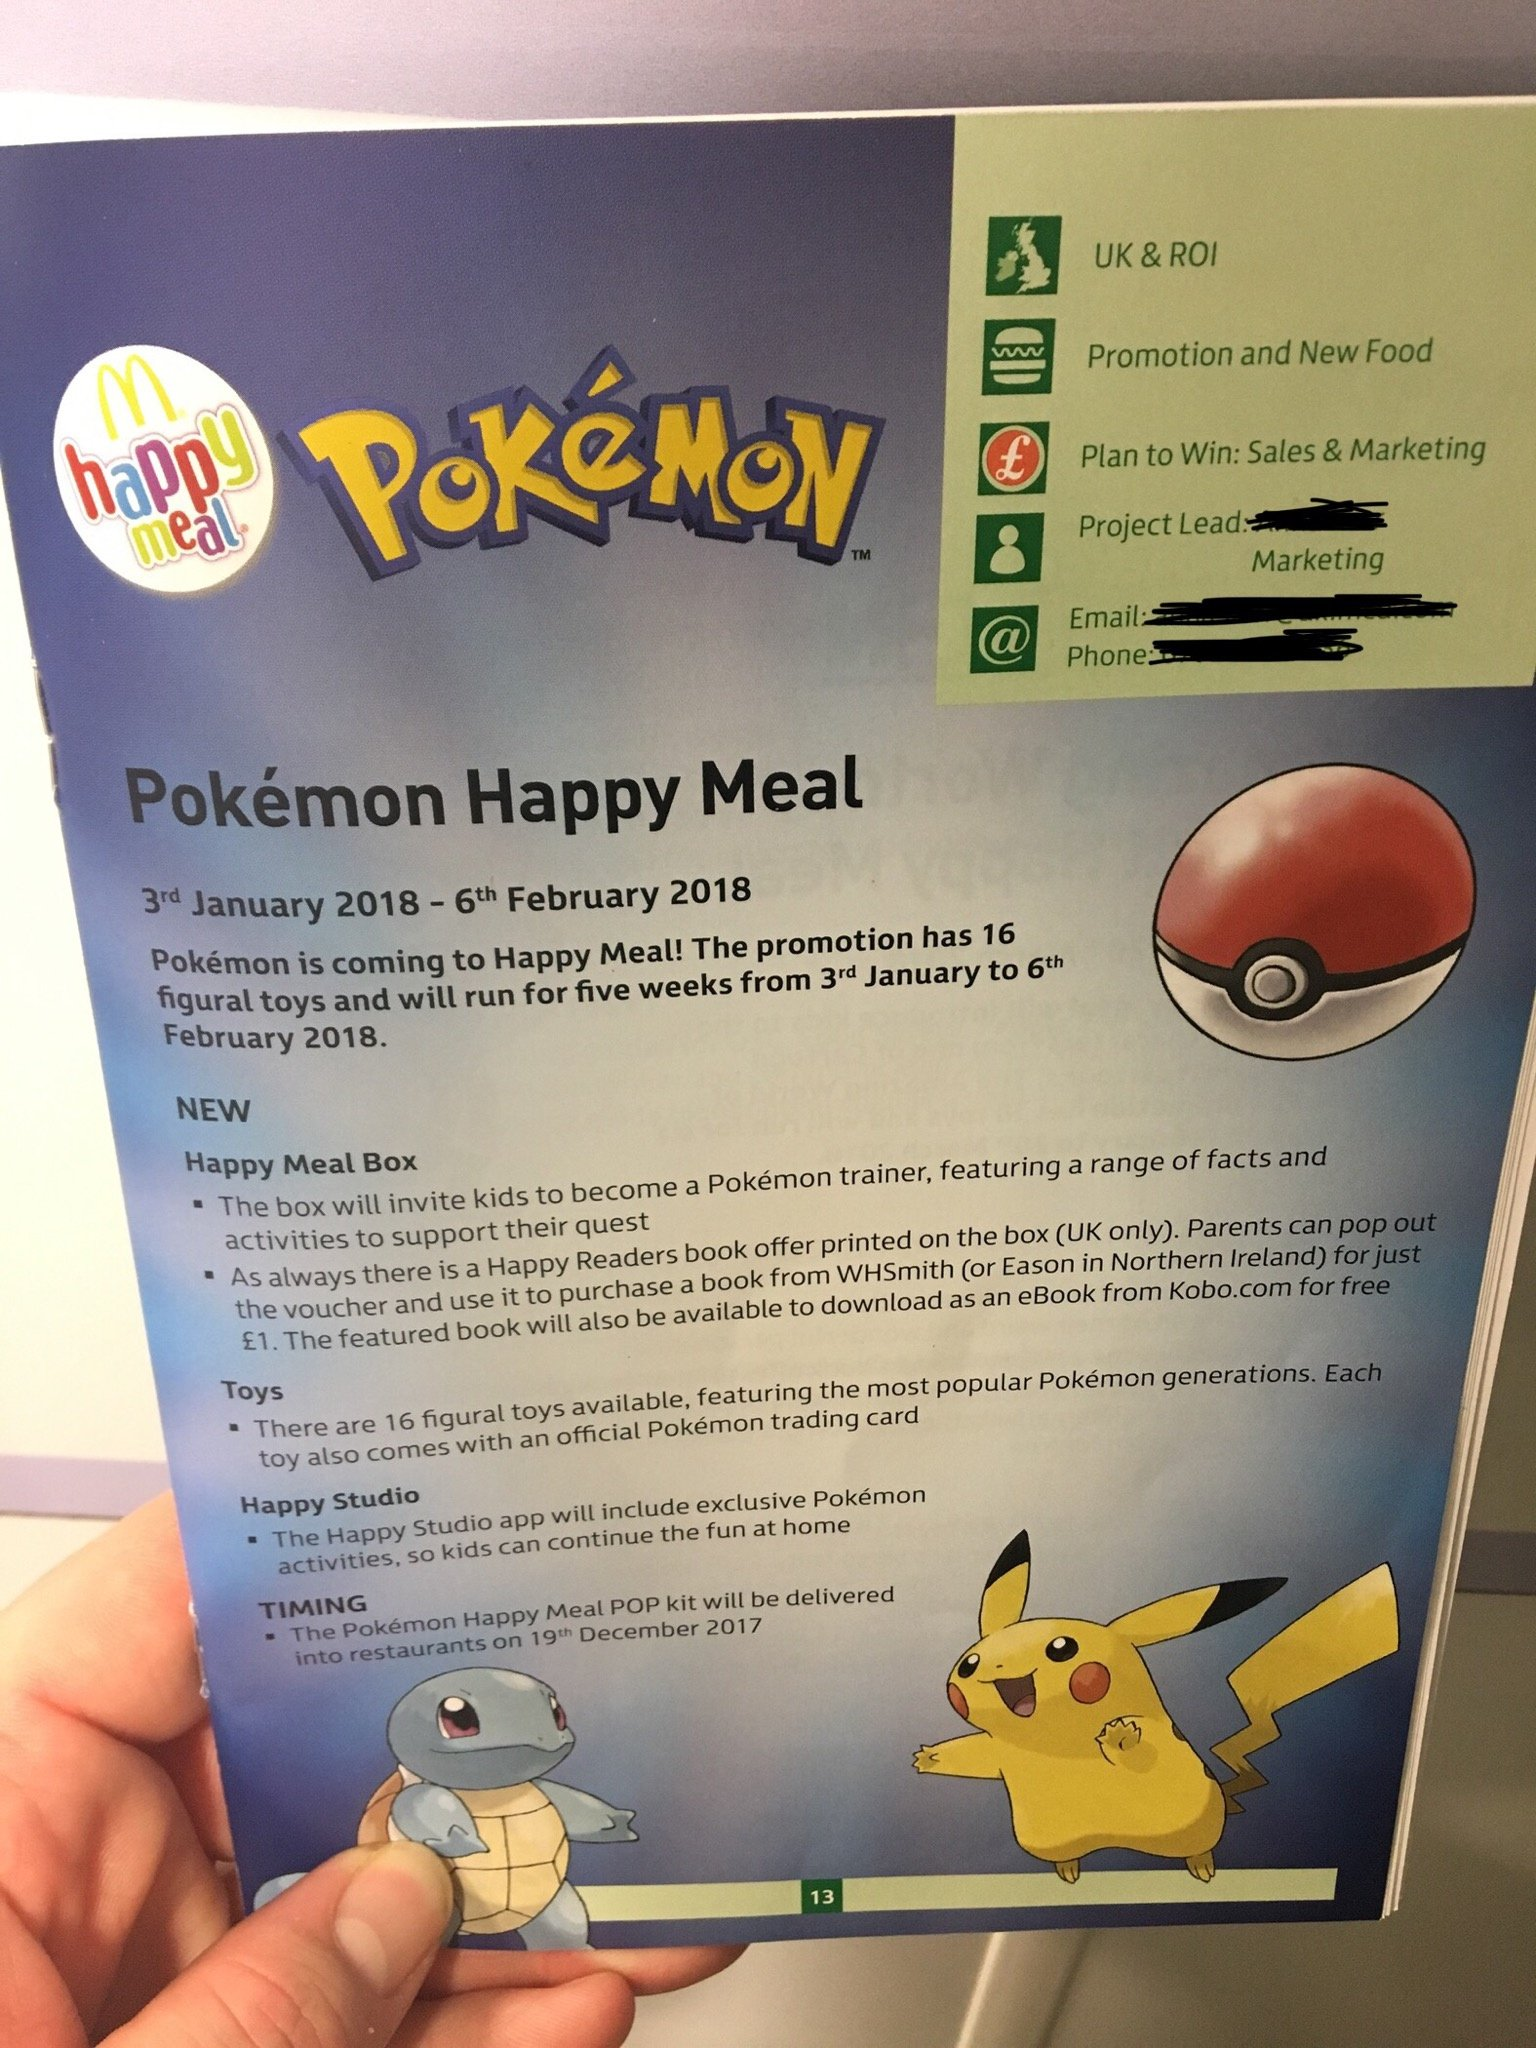 Pokmon happy meals are coming to mcdonalds in the uk nintendo life image1eg altavistaventures Choice Image